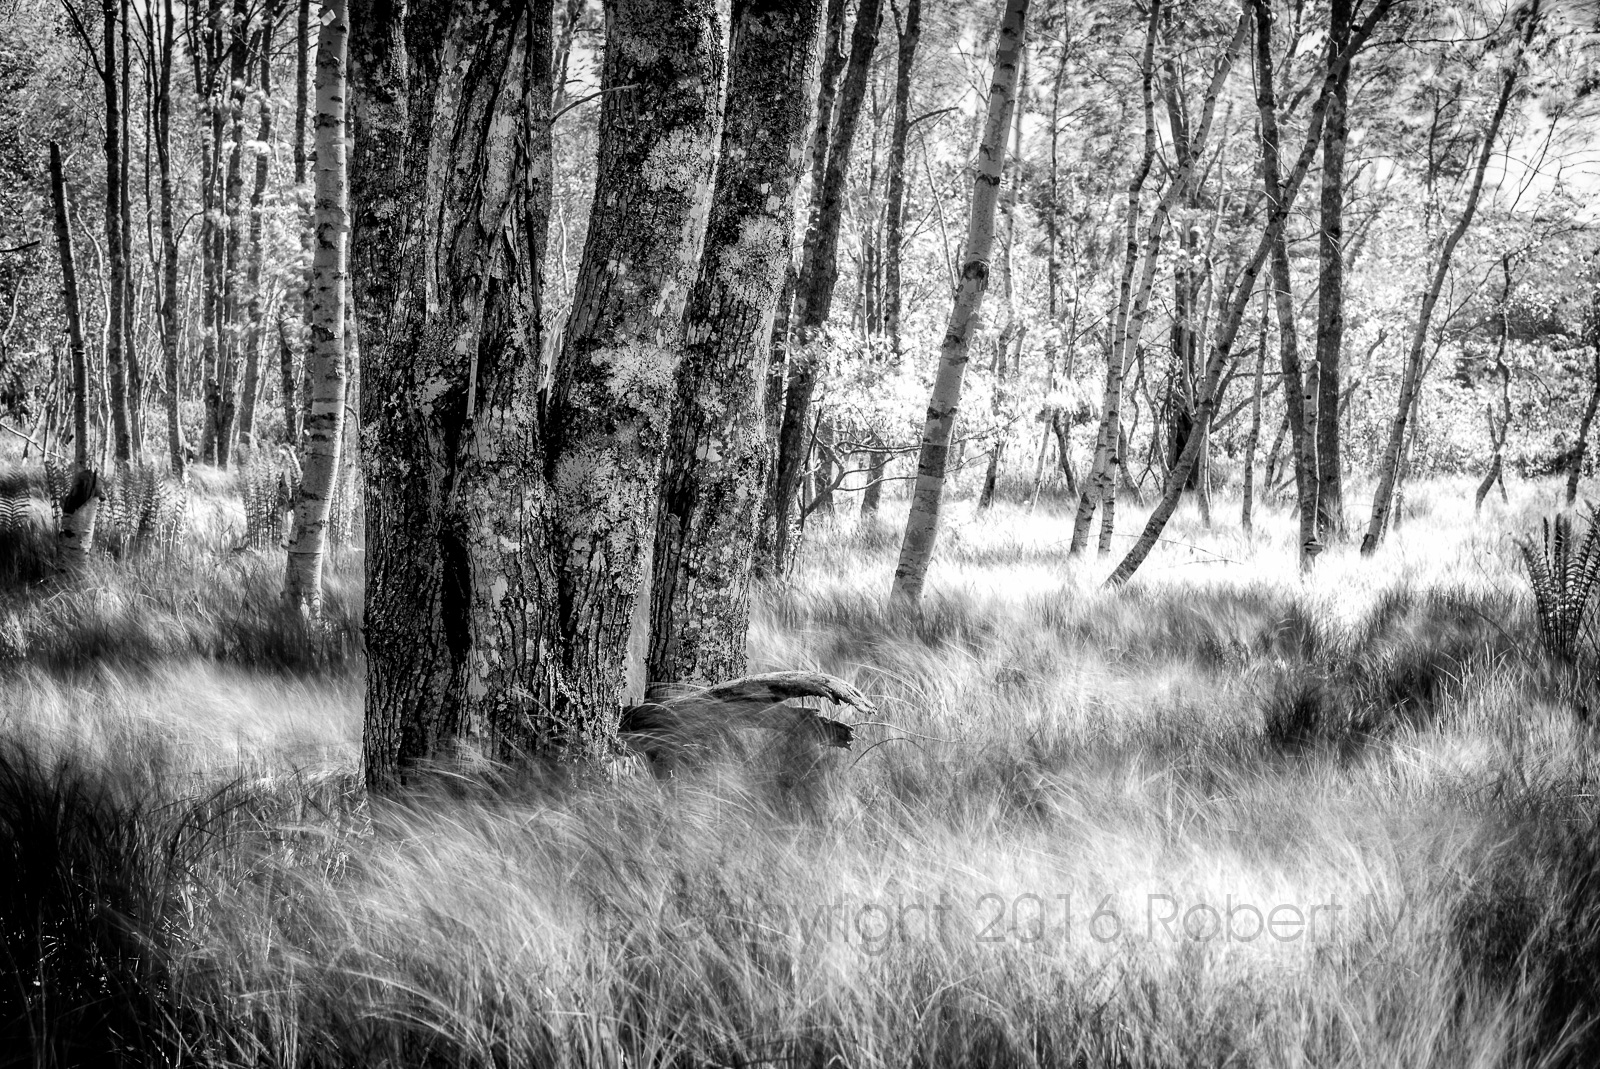 The combination of still trees and moving grasses is hard to resist. So, this is a 'must-get' image for me. And I...